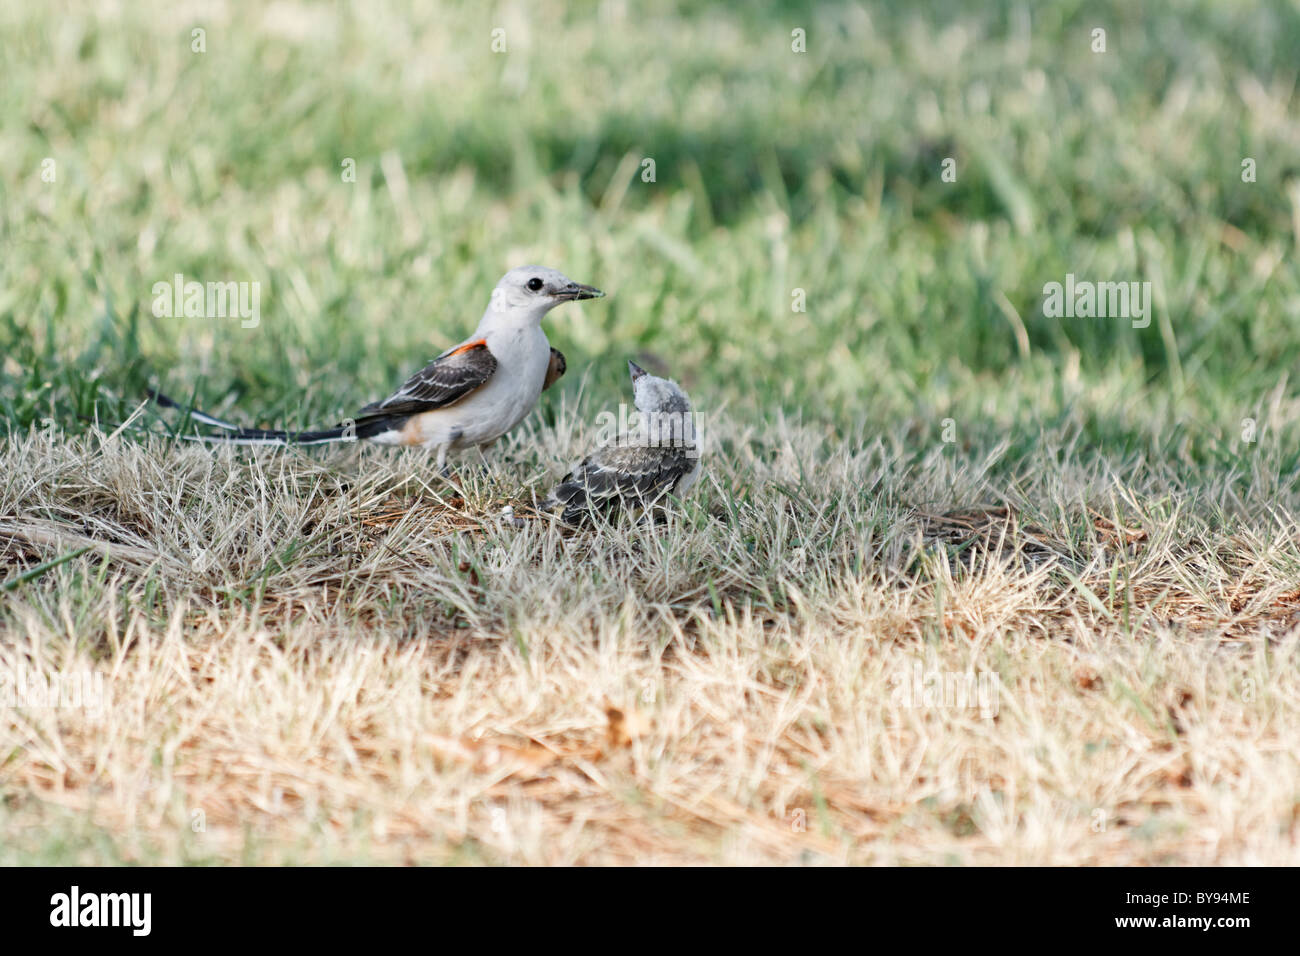 Scissortail flycatcher tending her young - Stock Image